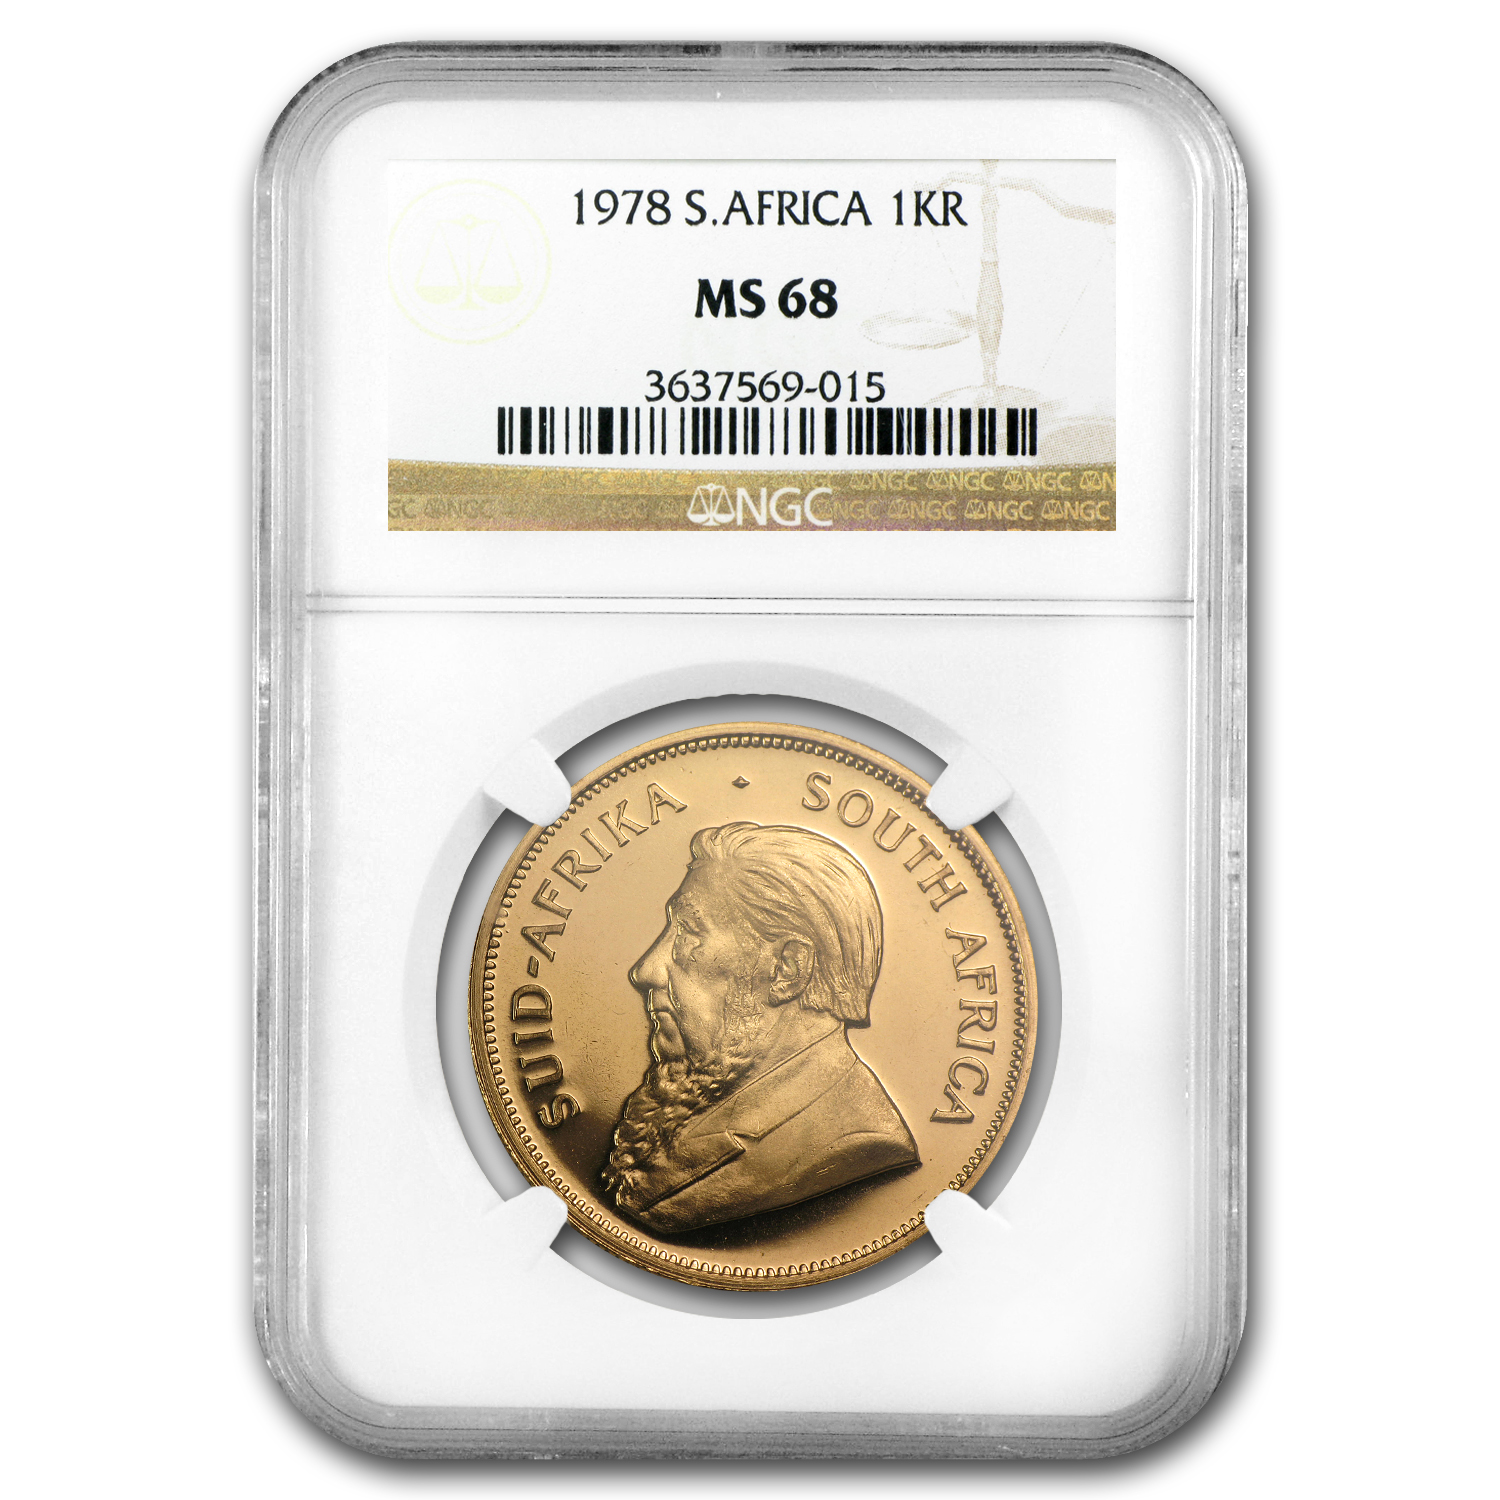 1978 1 oz Gold South African Krugerrand MS-68 NGC